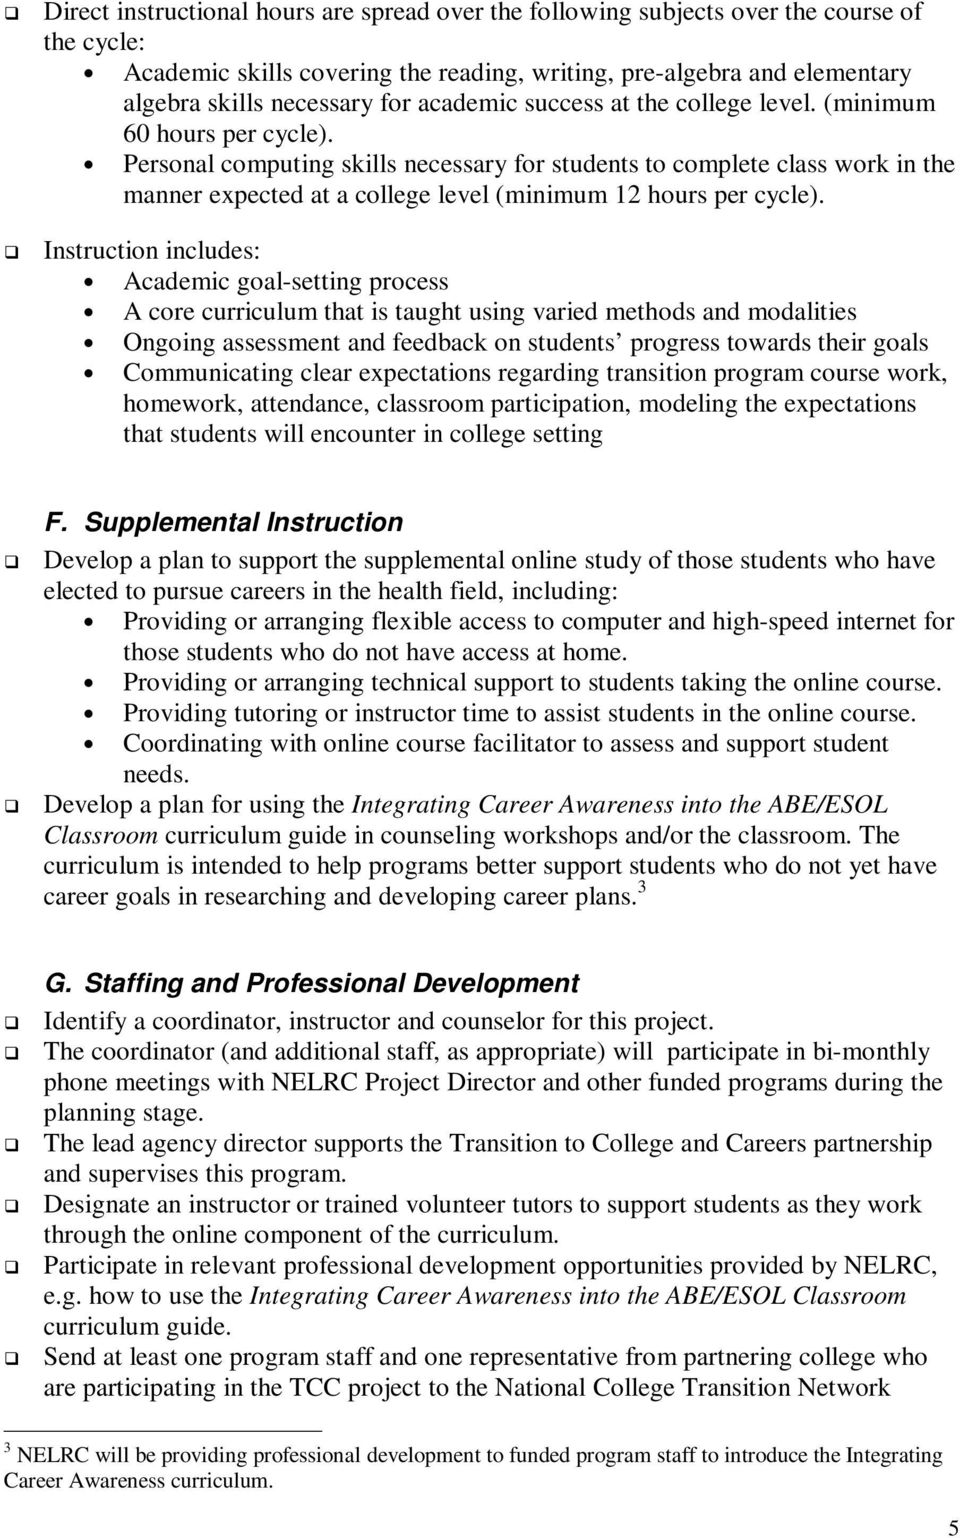 Personal computing skills necessary for students to complete class work in the manner expected at a college level (minimum 12 hours per cycle).